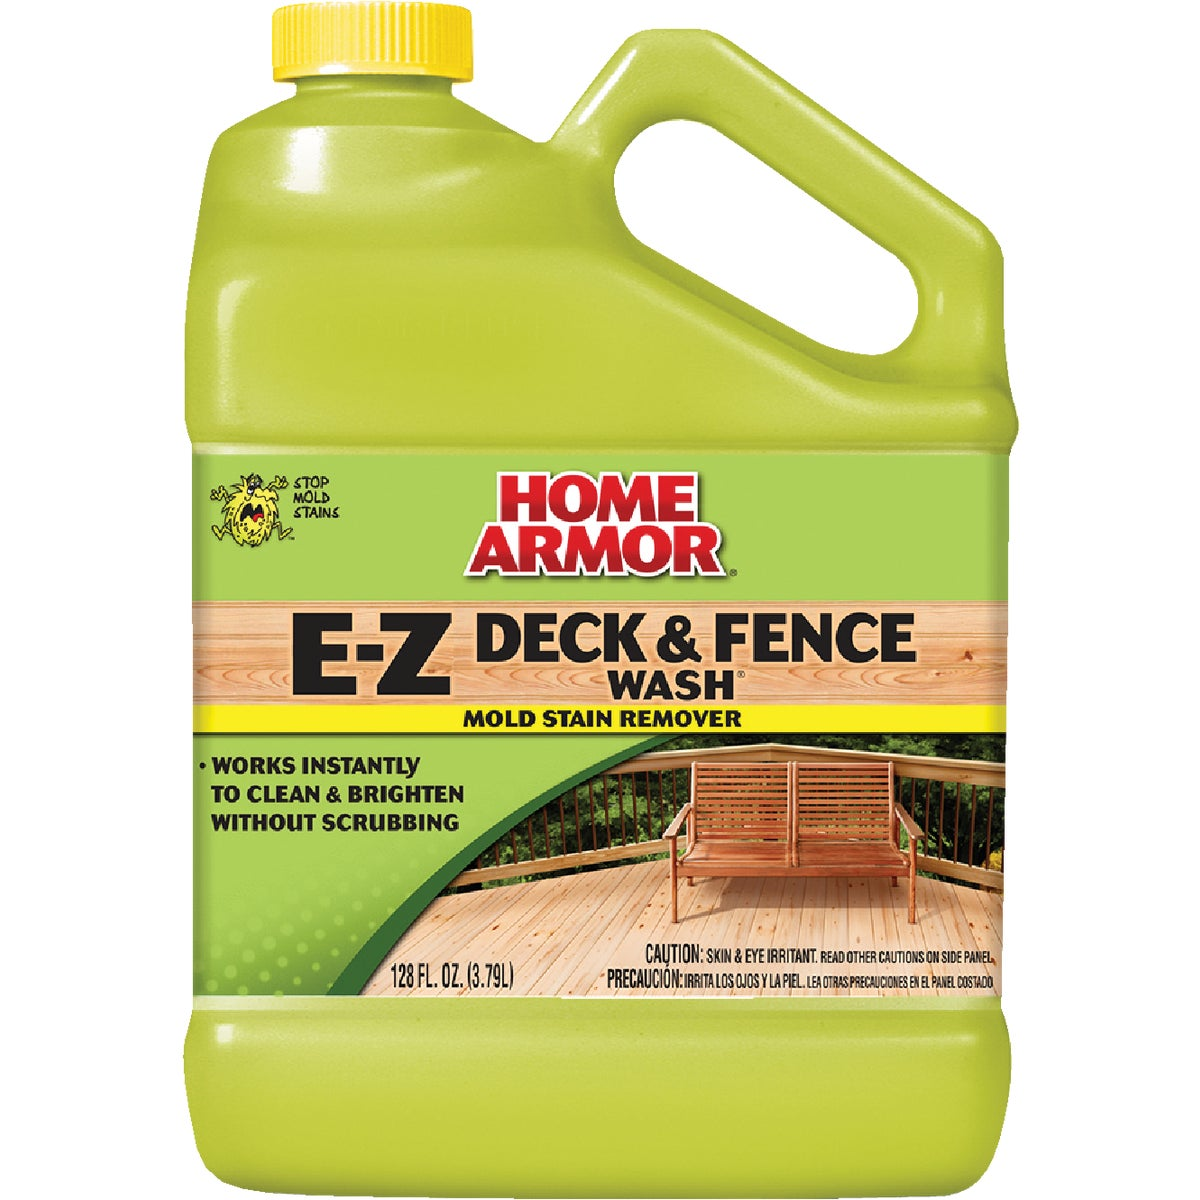 E-Z GAL DECK WASH - FG505 by Wm Barr